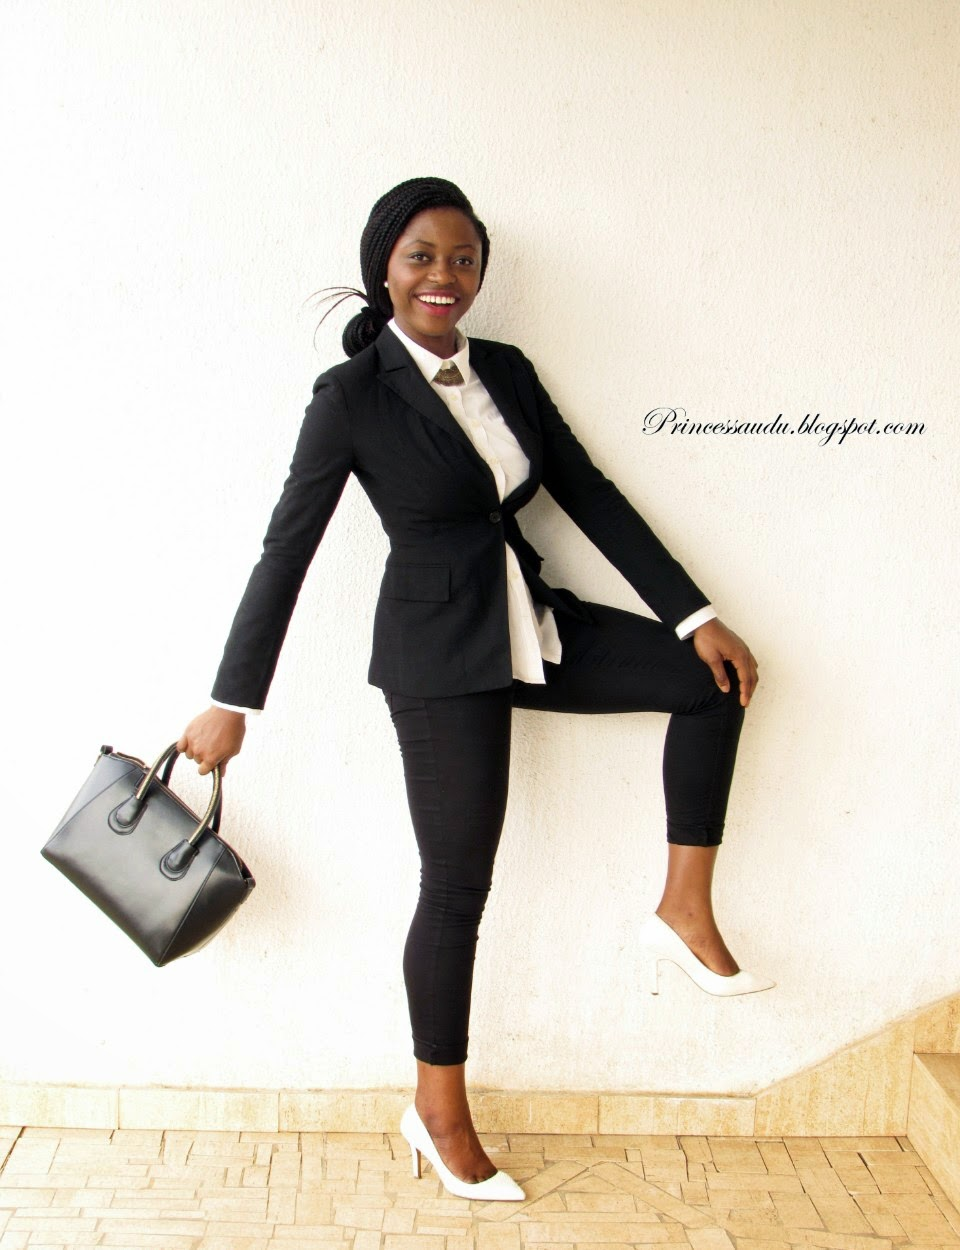 Monchrome, black and white, classic, white pumps, black bag, black blazer, wardrobe basics, essentials